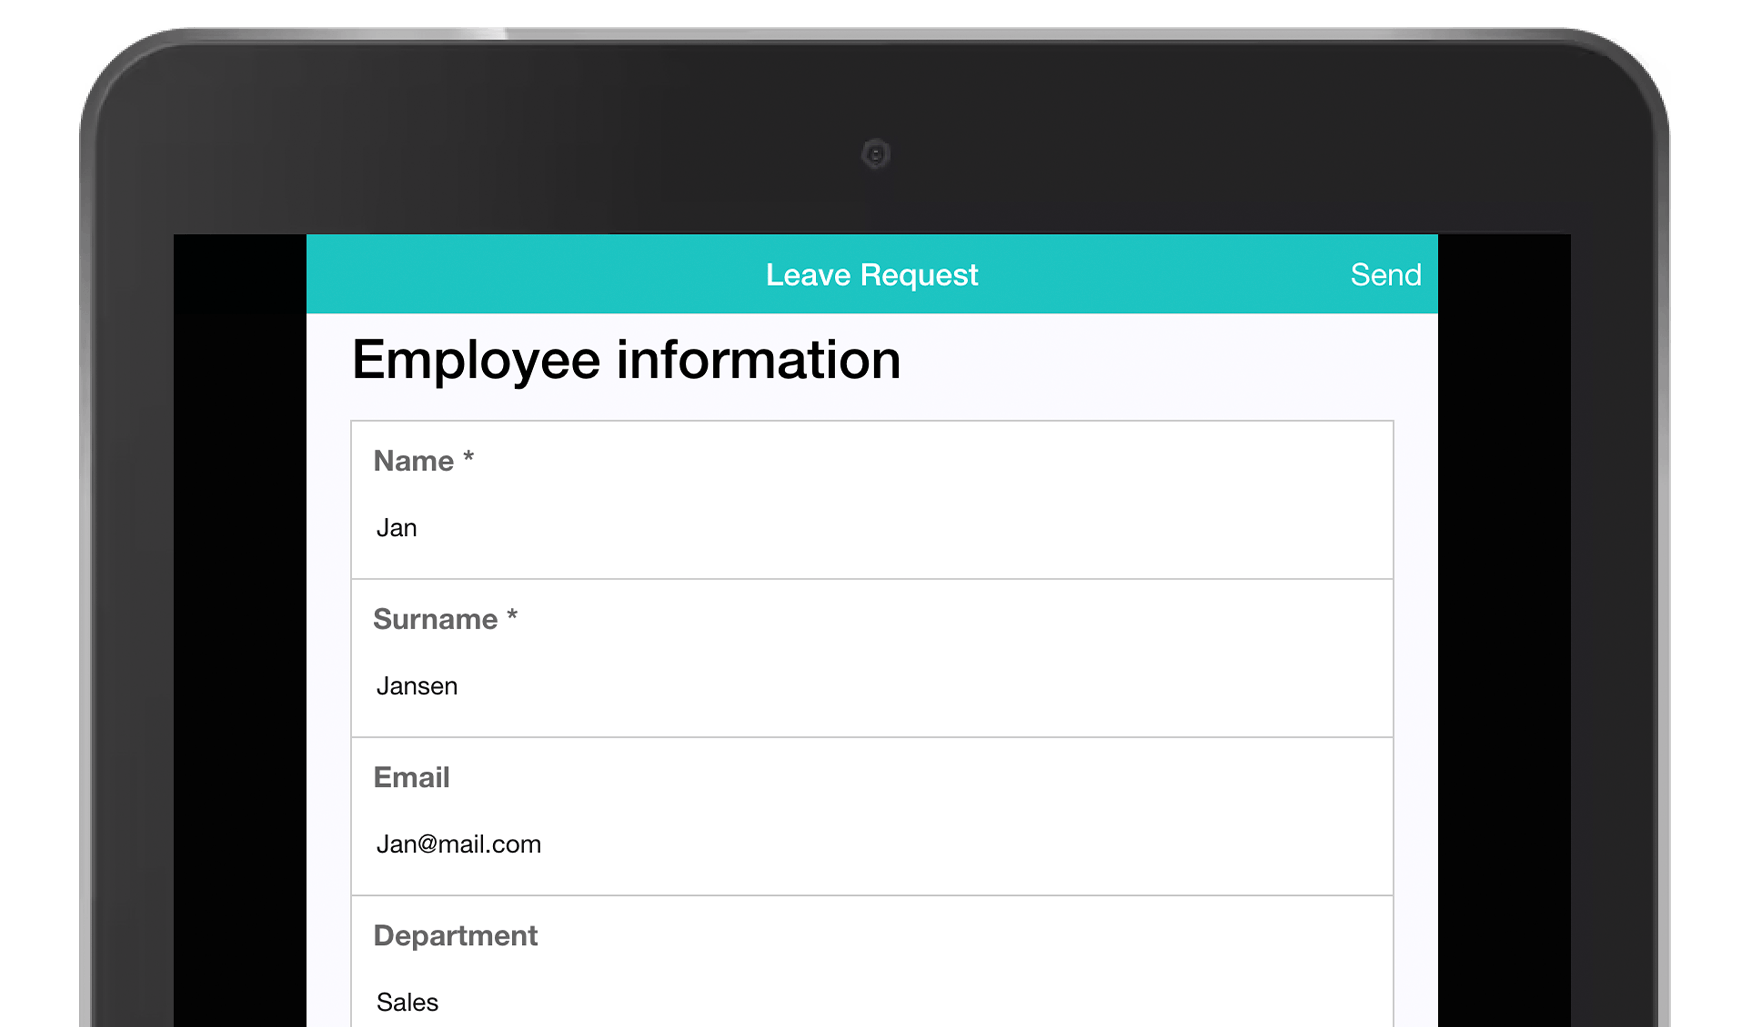 MoreApp Leave Request form